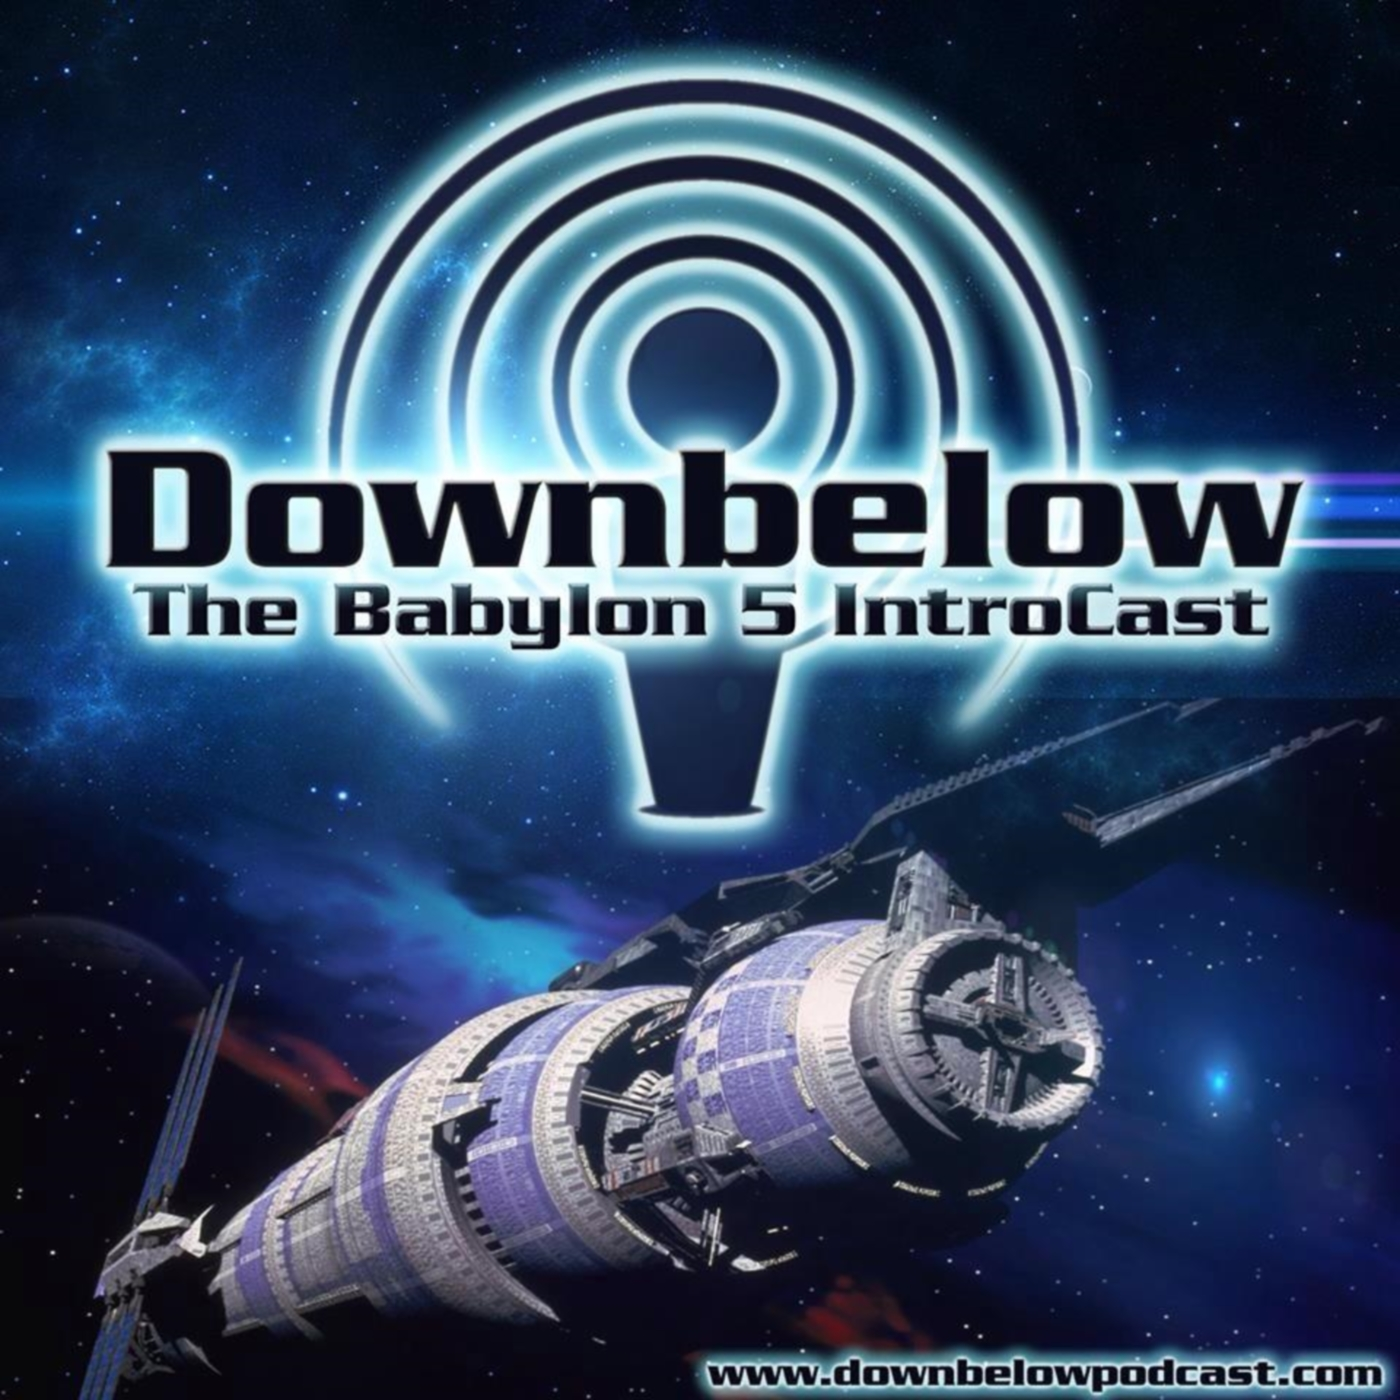 Downbelow: A Babylon 5 IntroCast